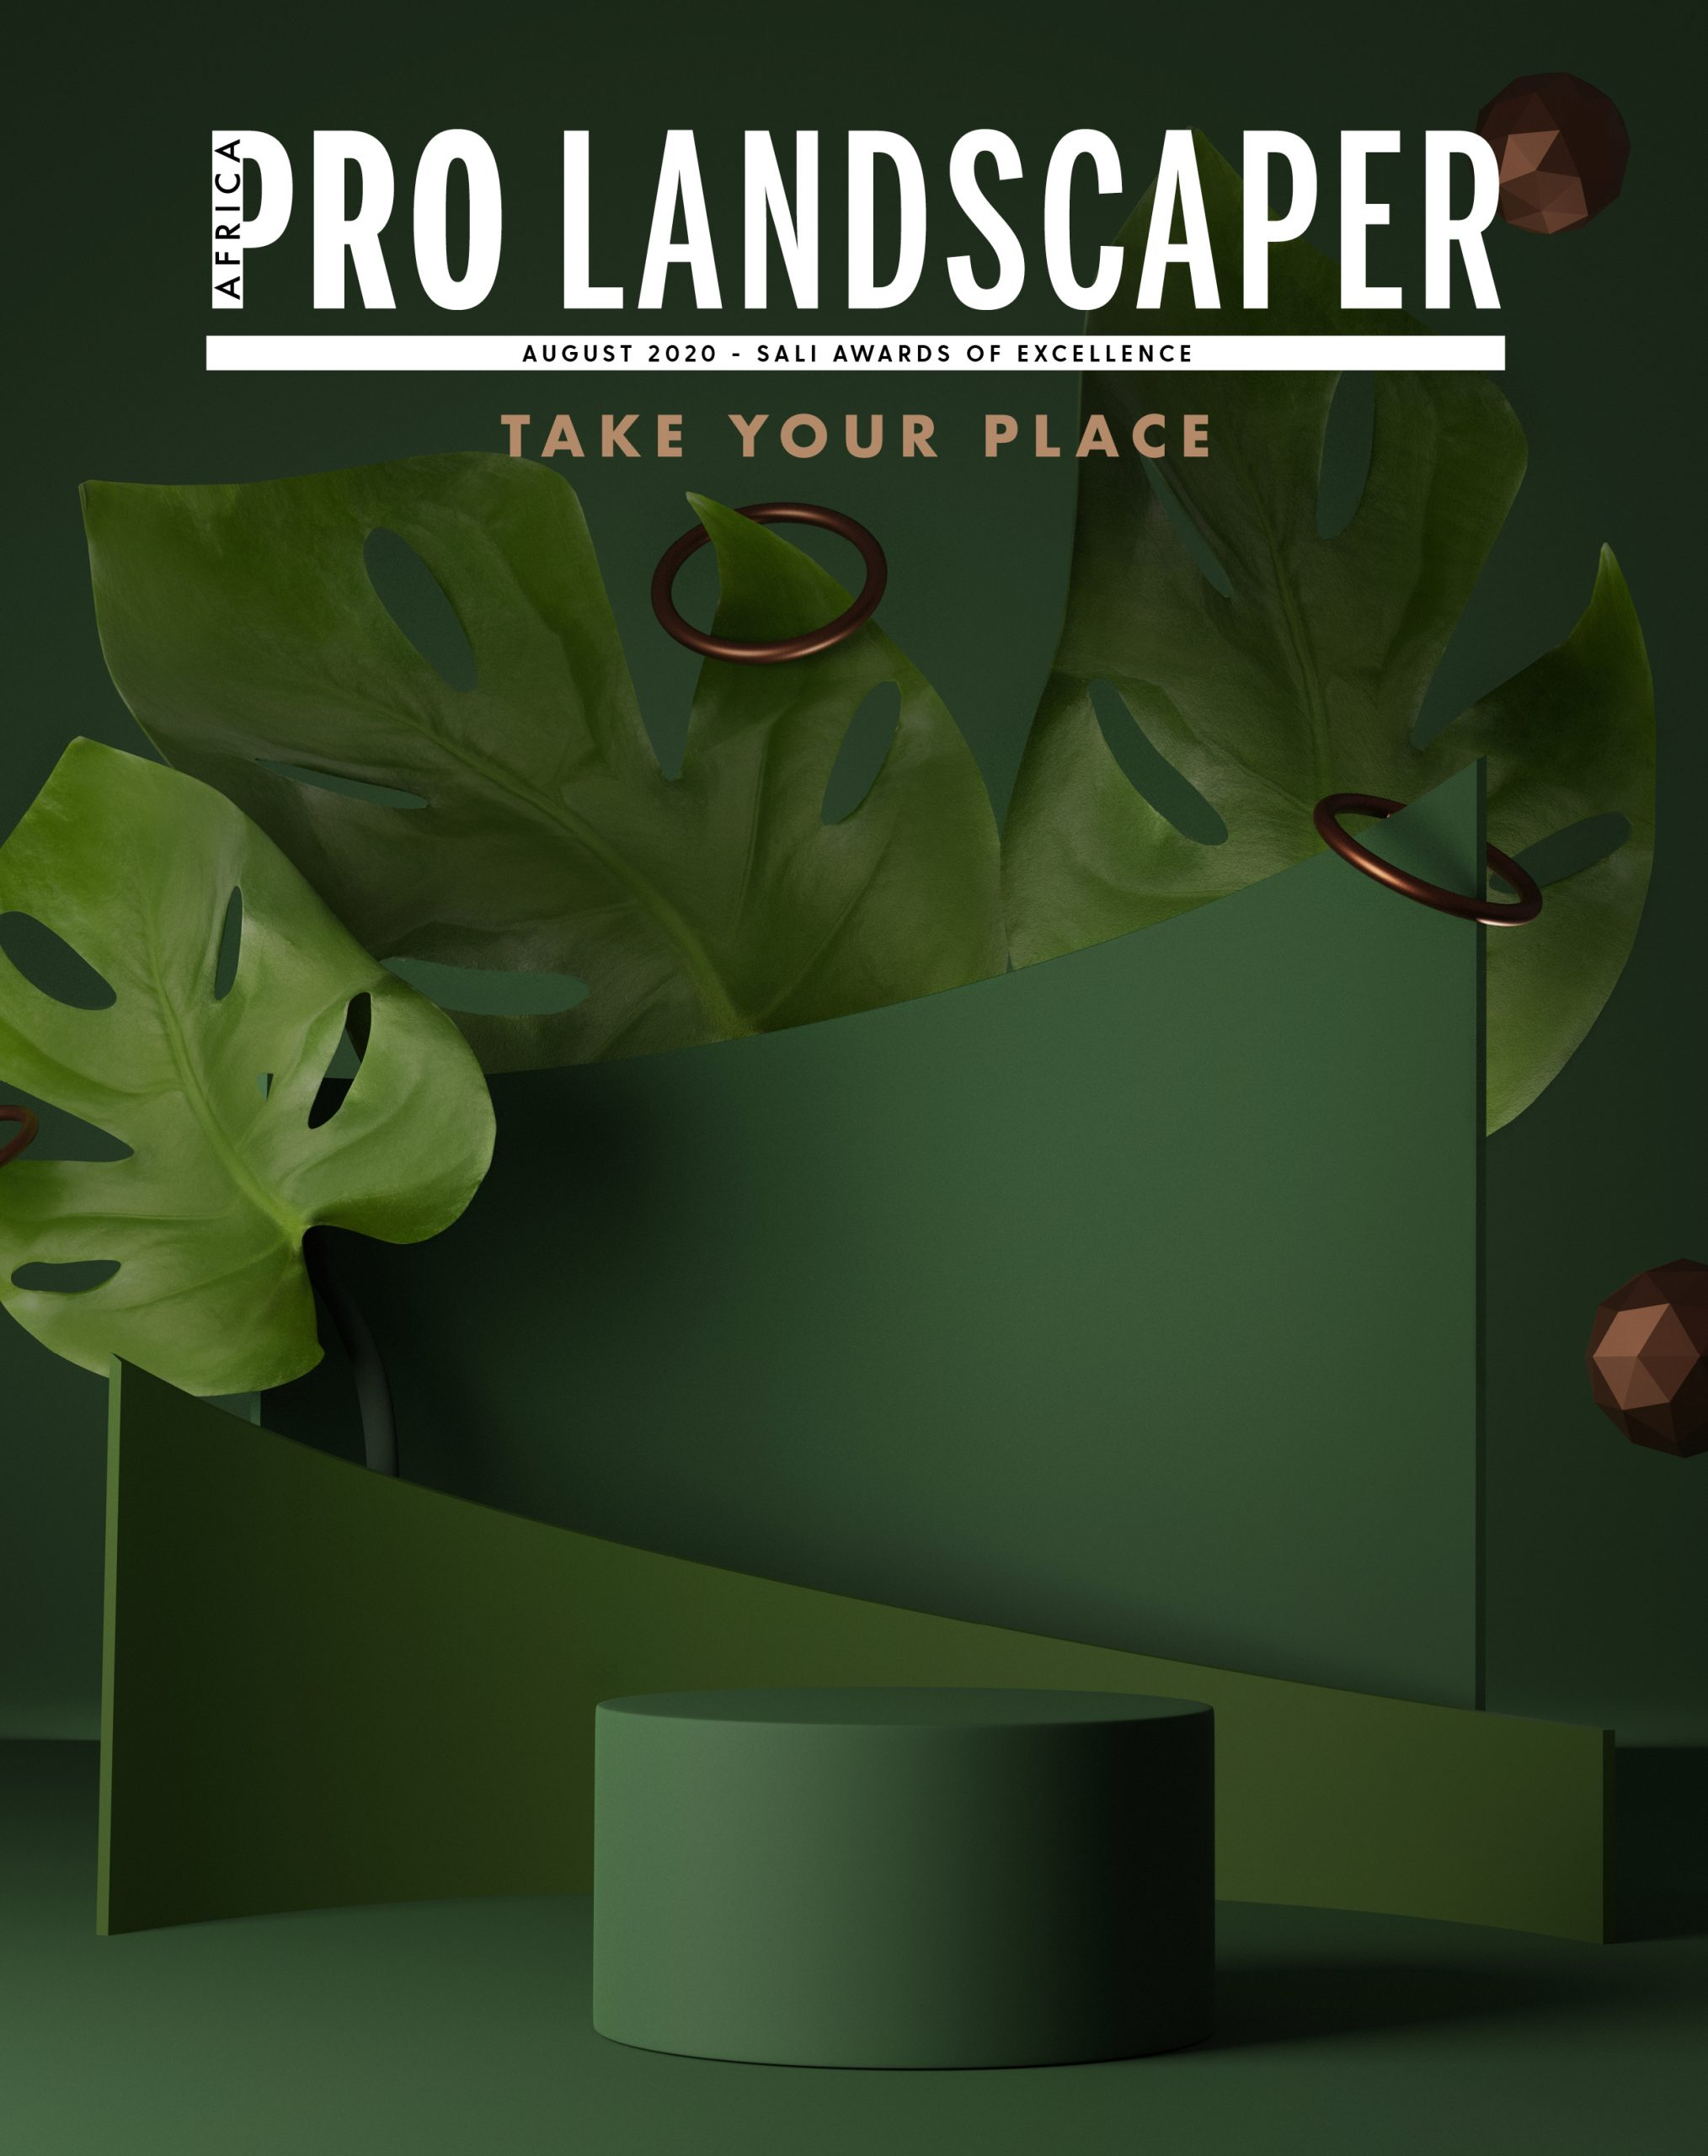 Pro Landscaper Africa August Awards of Excellence